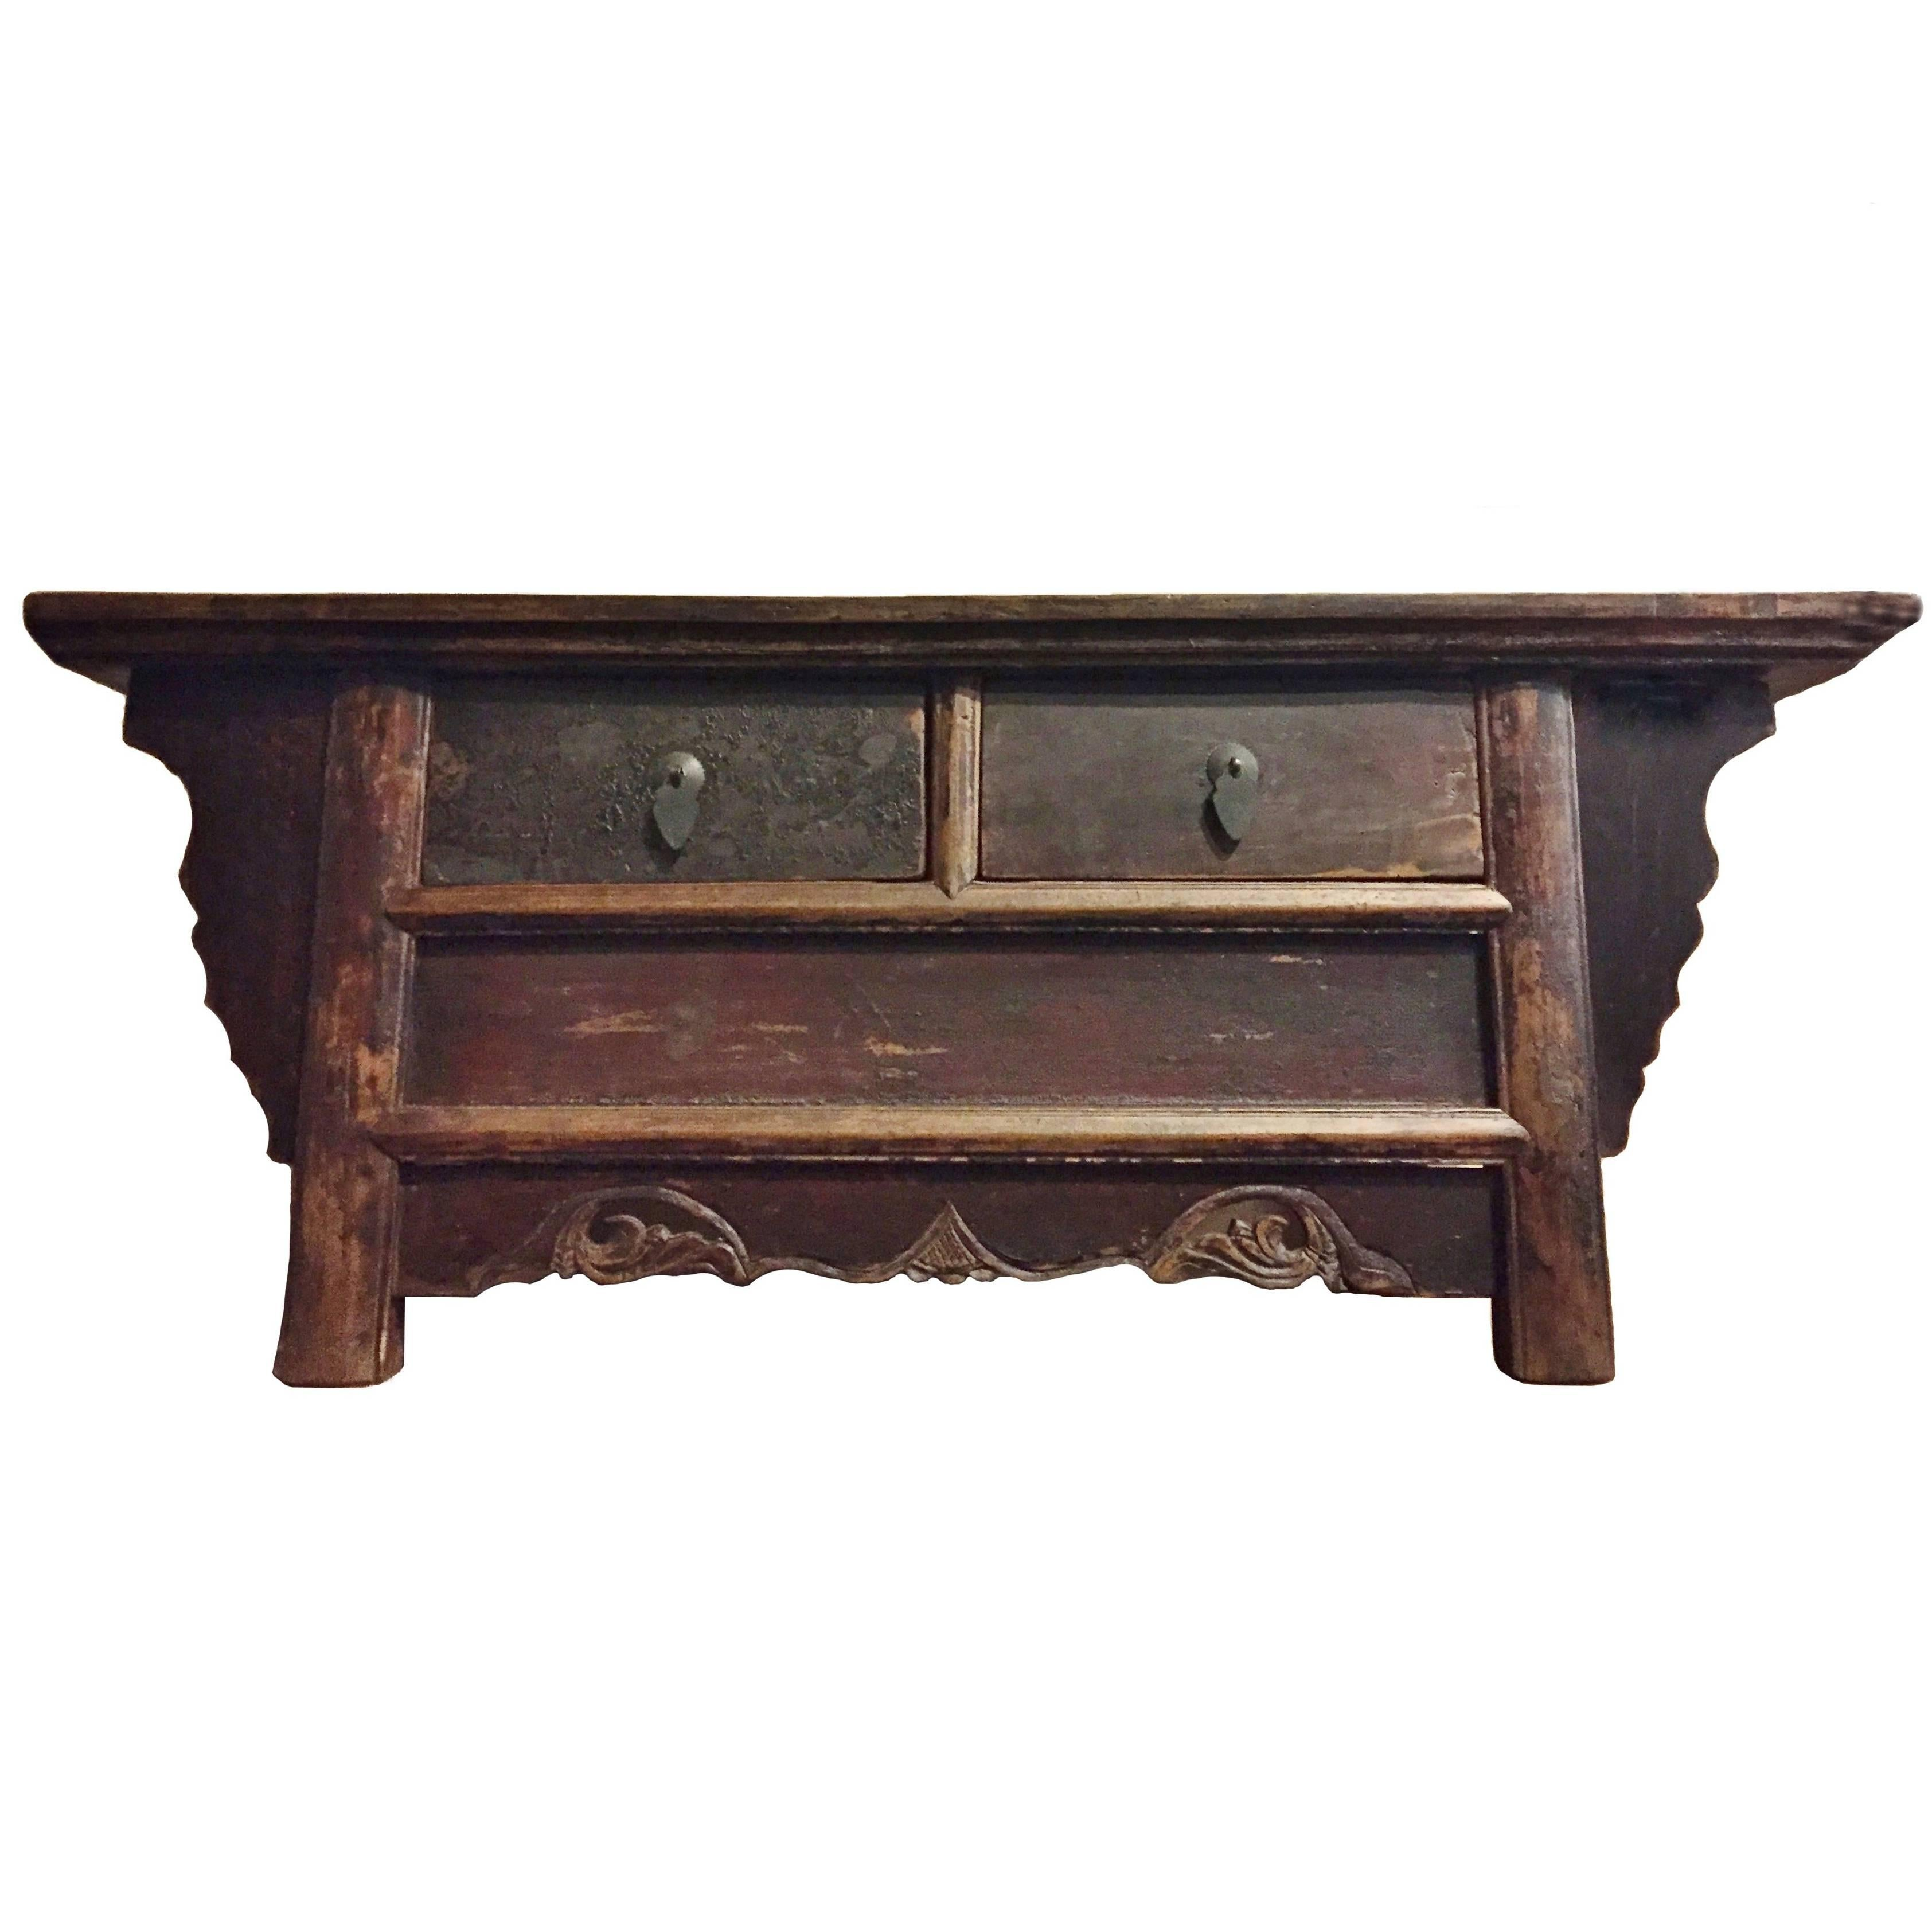 Antique Low Meditation Table II, Low Chest 1